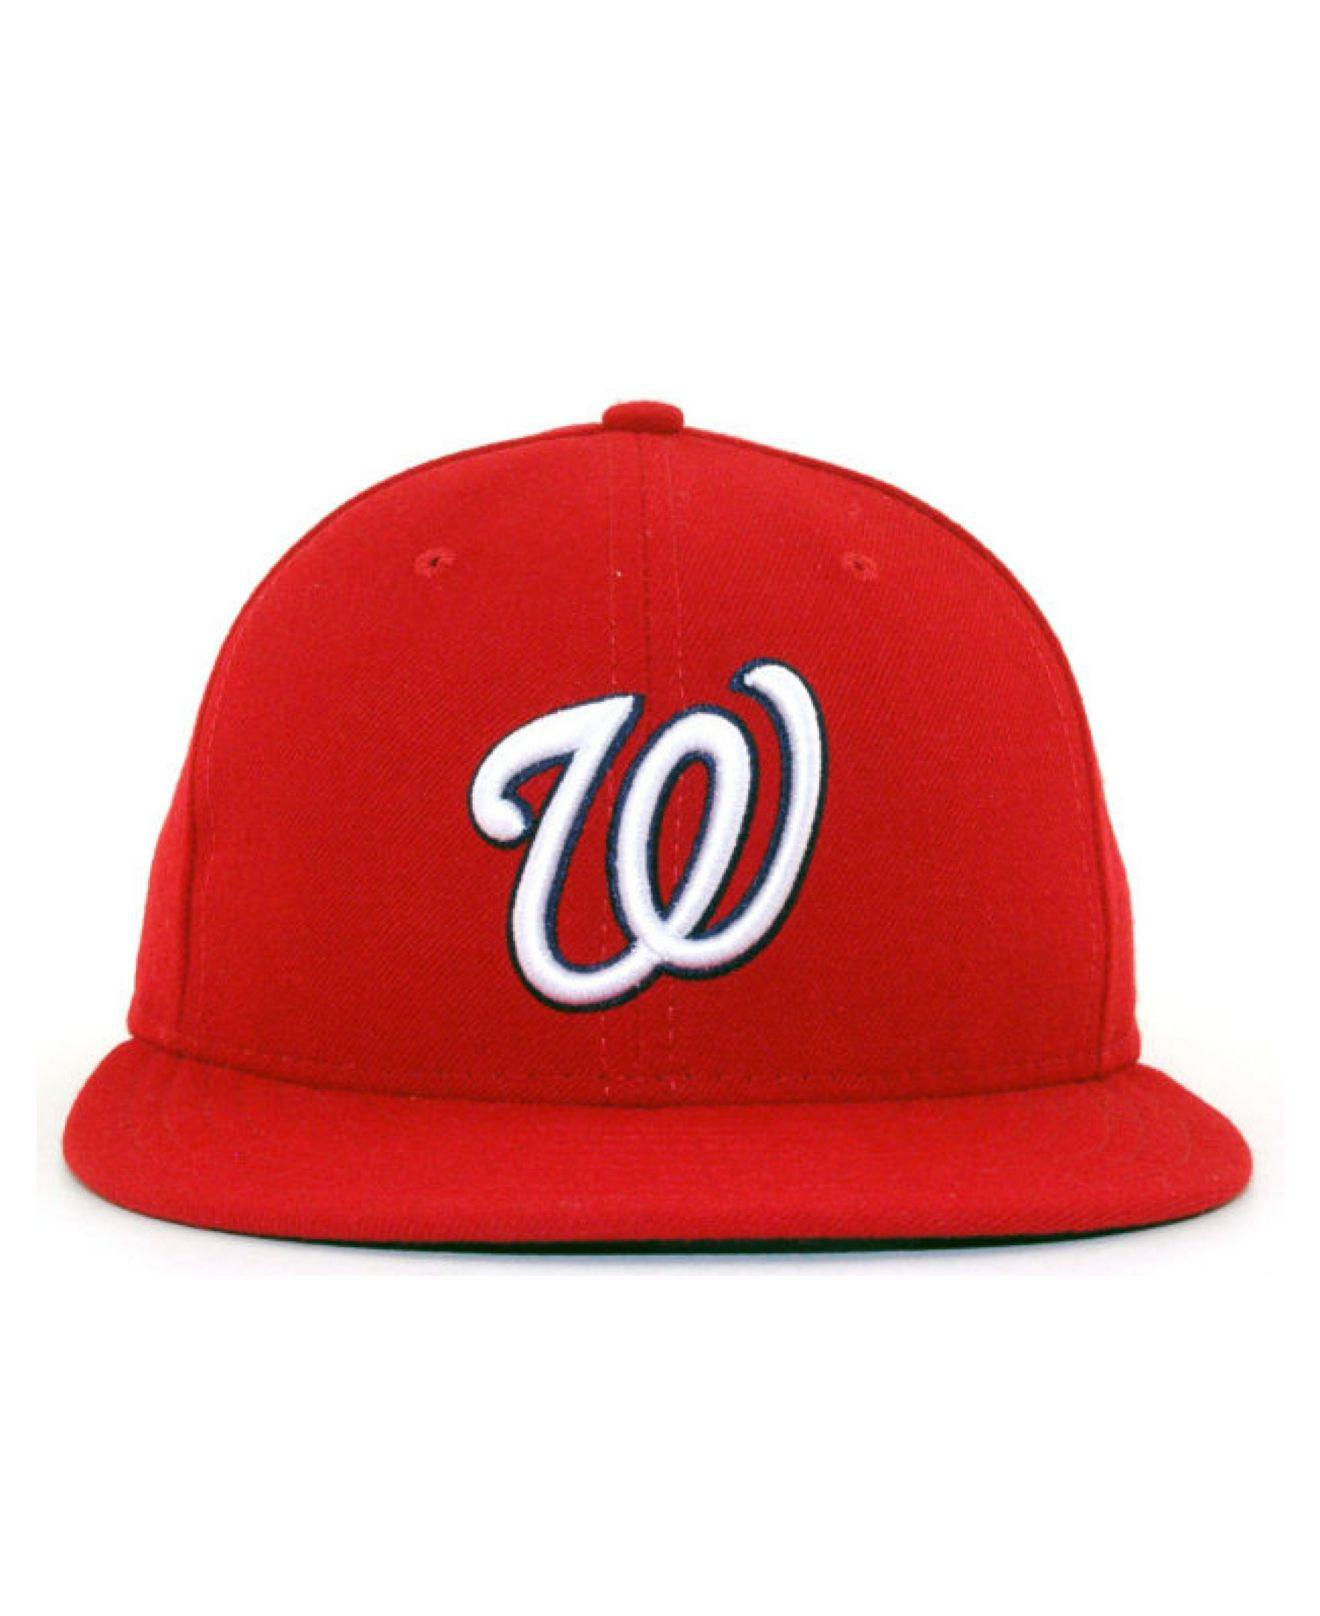 a97a05b5 Lyst - KTZ Washington Nationals Mlb Authentic Collection 59fifty Cap in Red  for Men